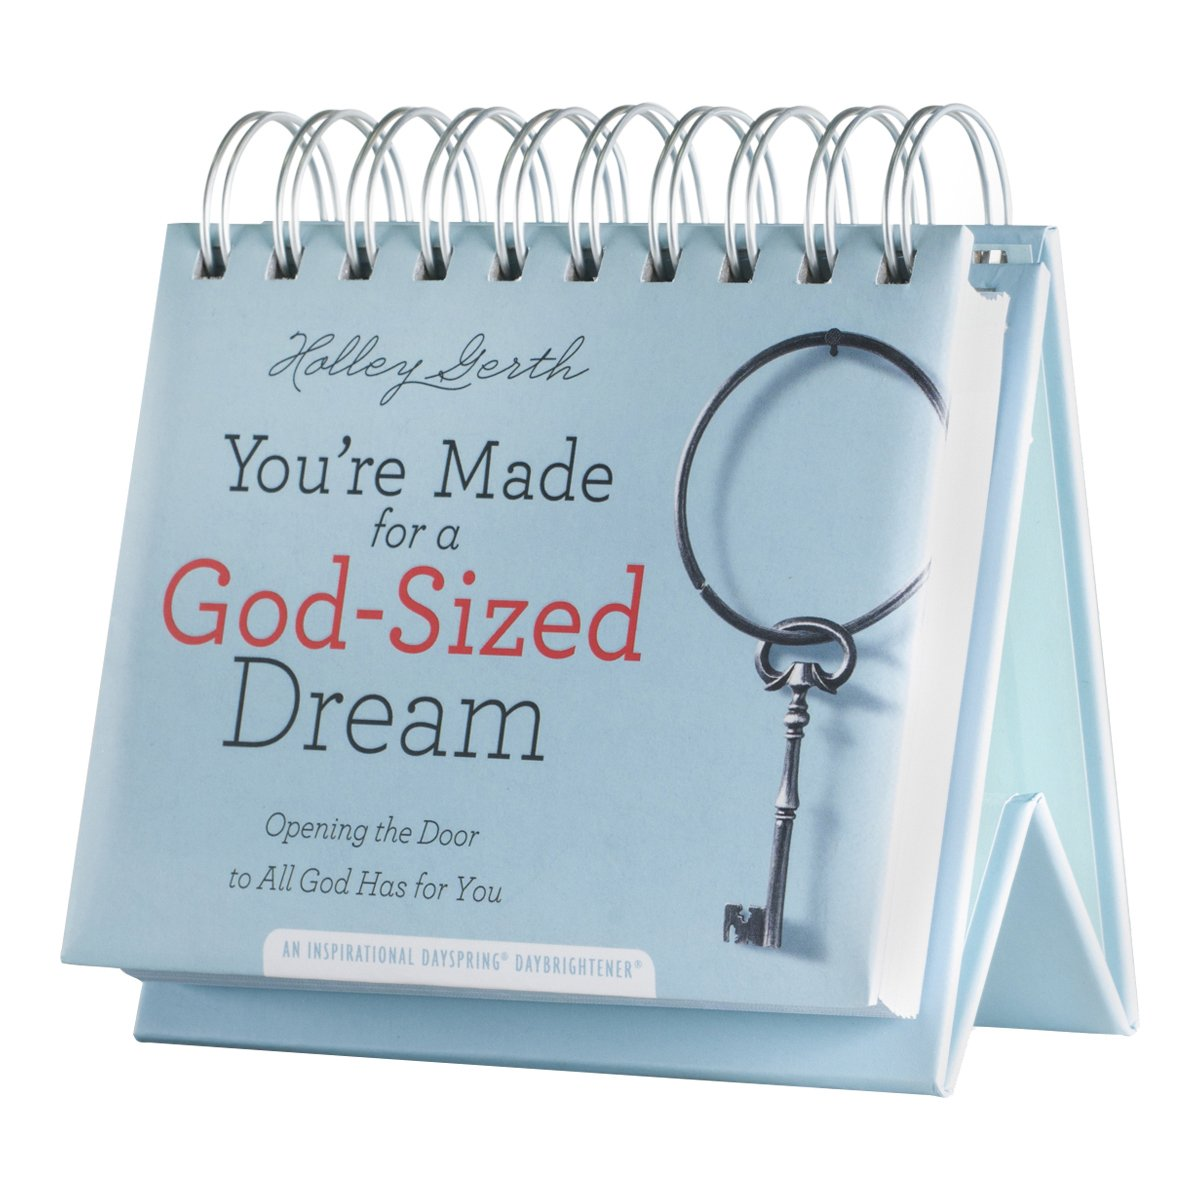 Flip Calendar - Holley Gerth - You're Made for a God-Sized Dream by Dayspring